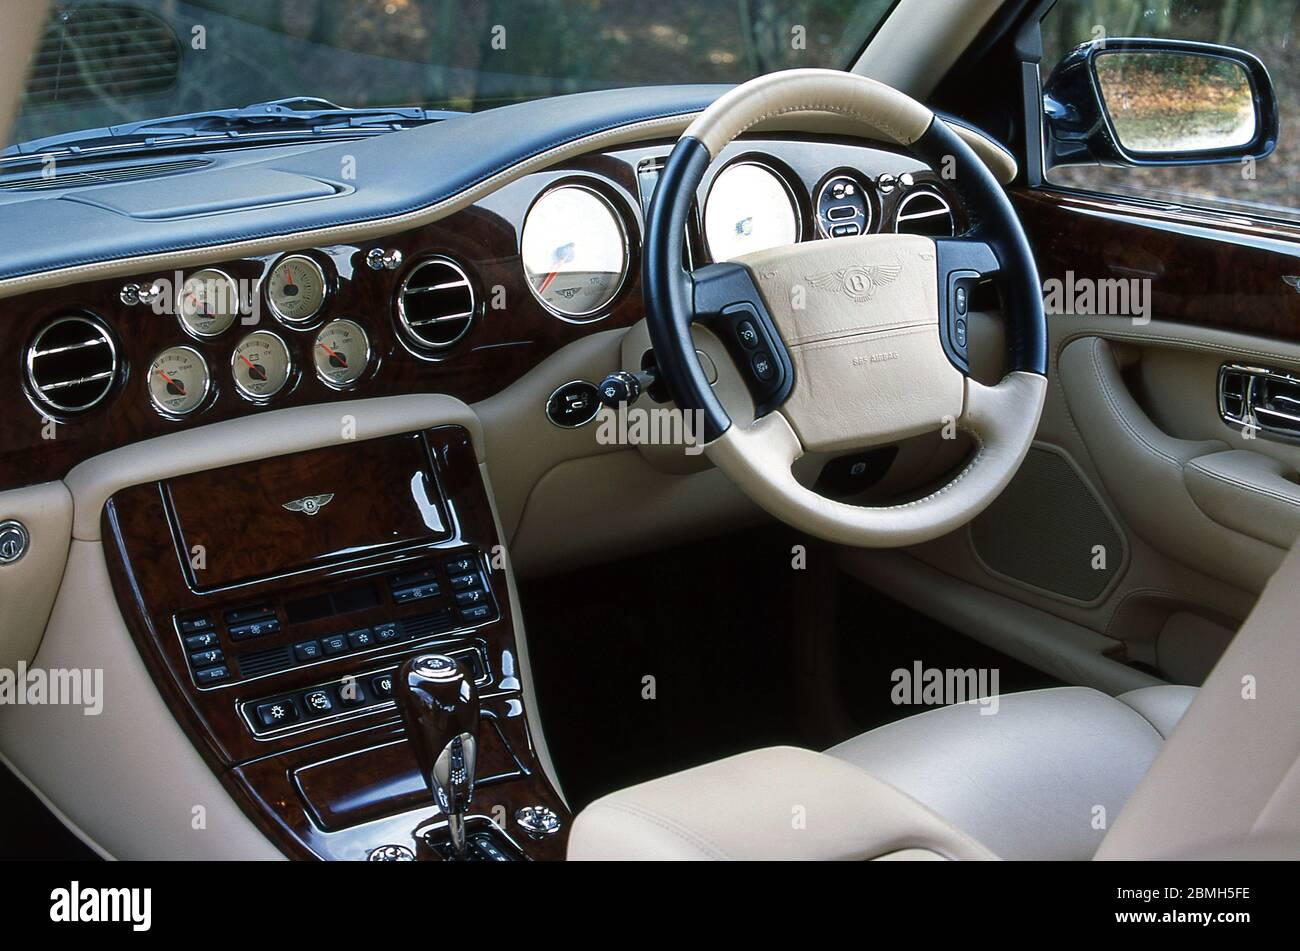 Bentley Arnage High Resolution Stock Photography And Images Alamy